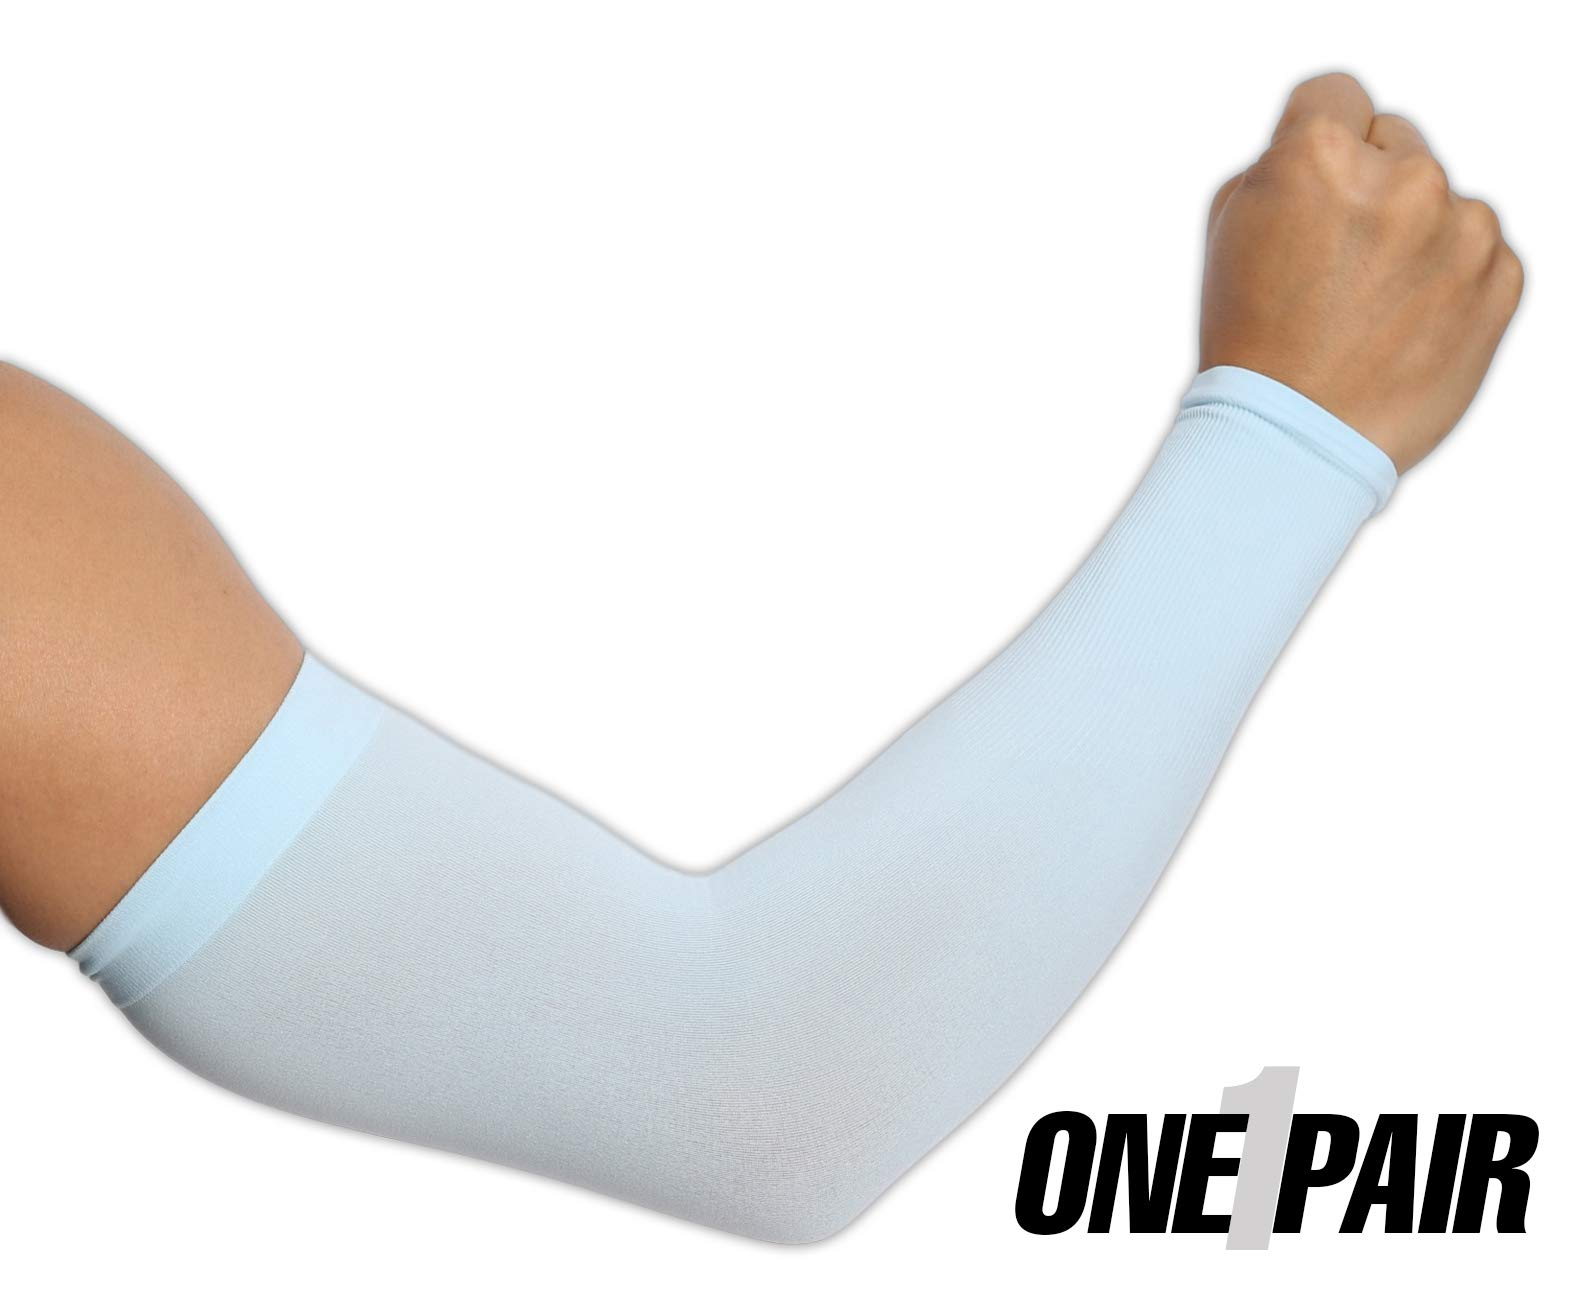 81b49f15af UV Protection Cooling Arm Sleeves - UPF 50 Long Sun Sleeves for Men   Women.